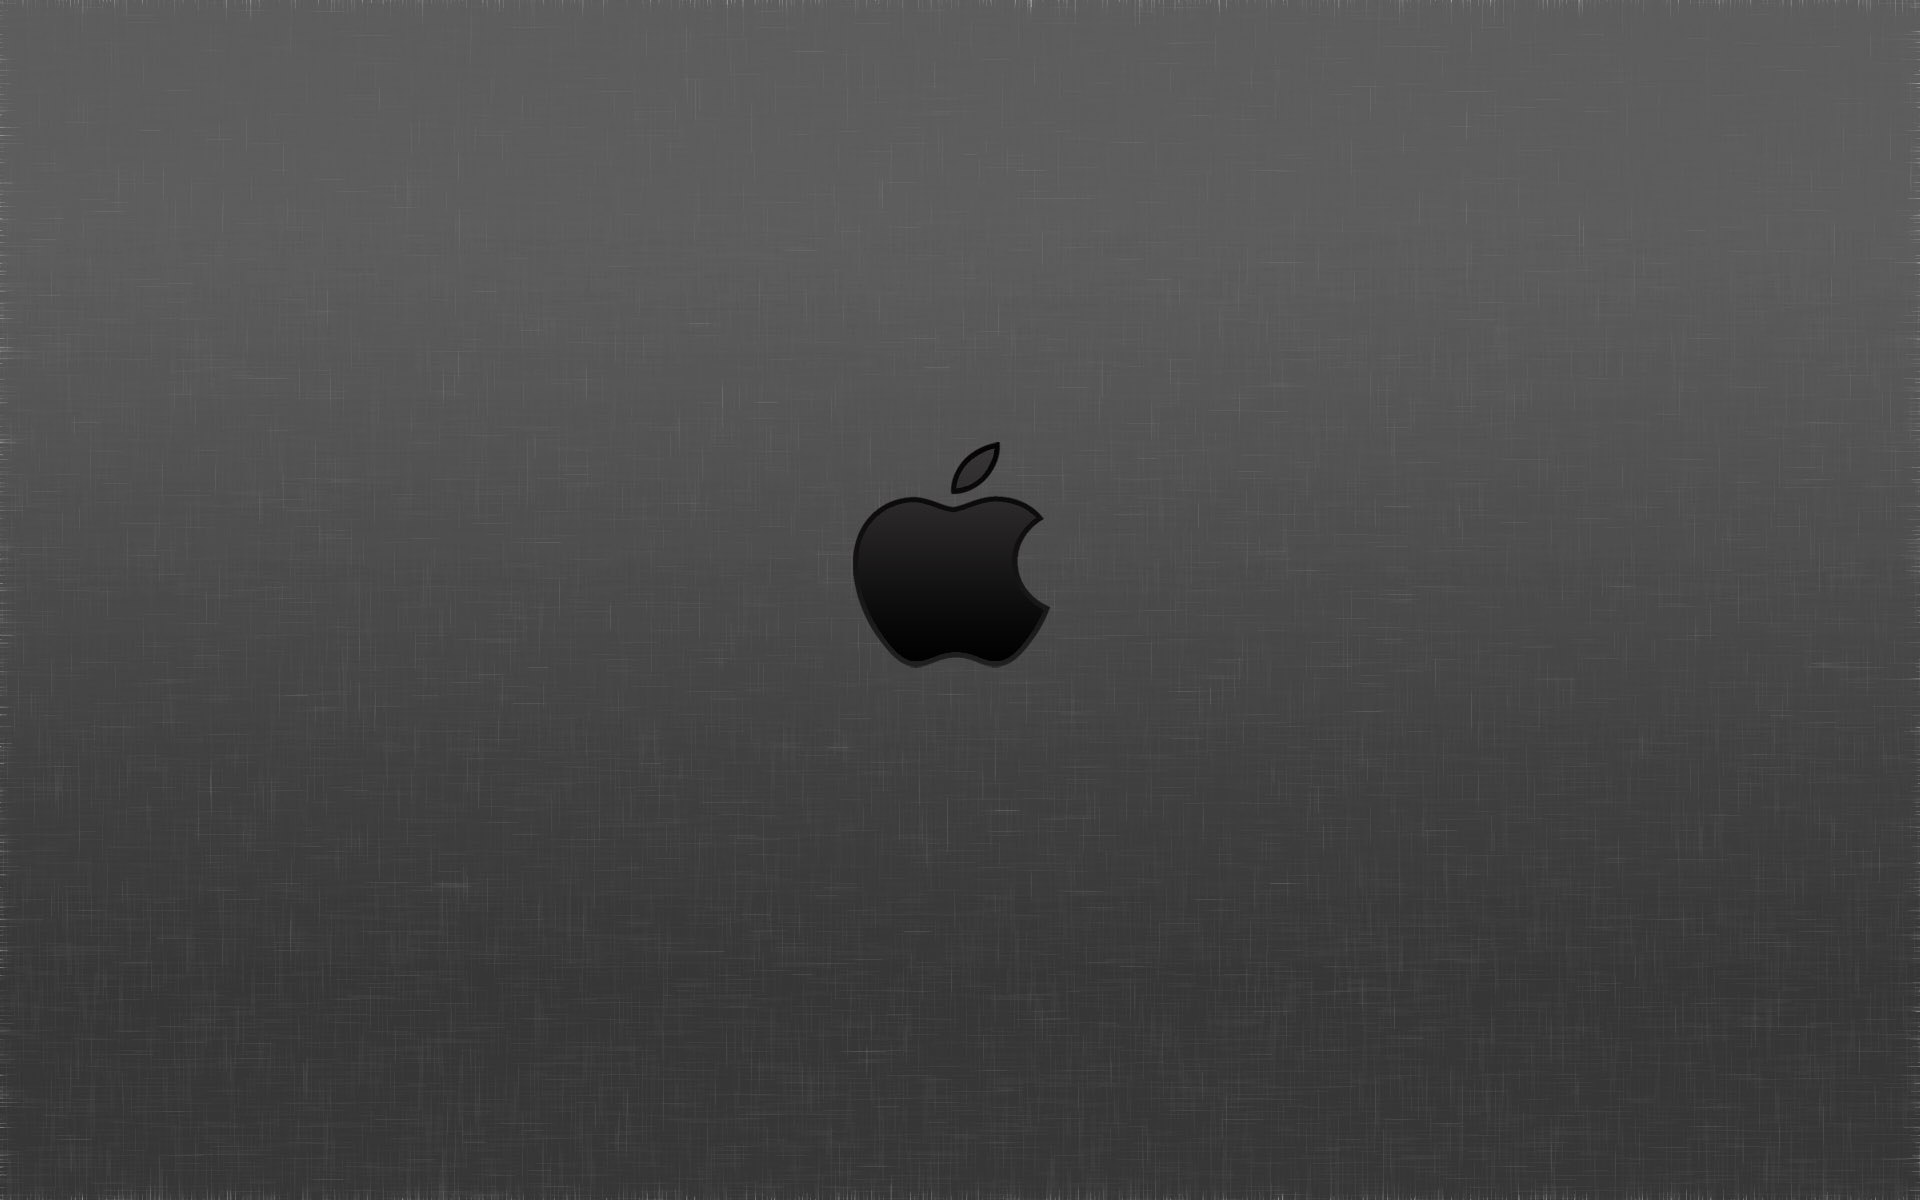 a black apple logo combined with gray background crossed